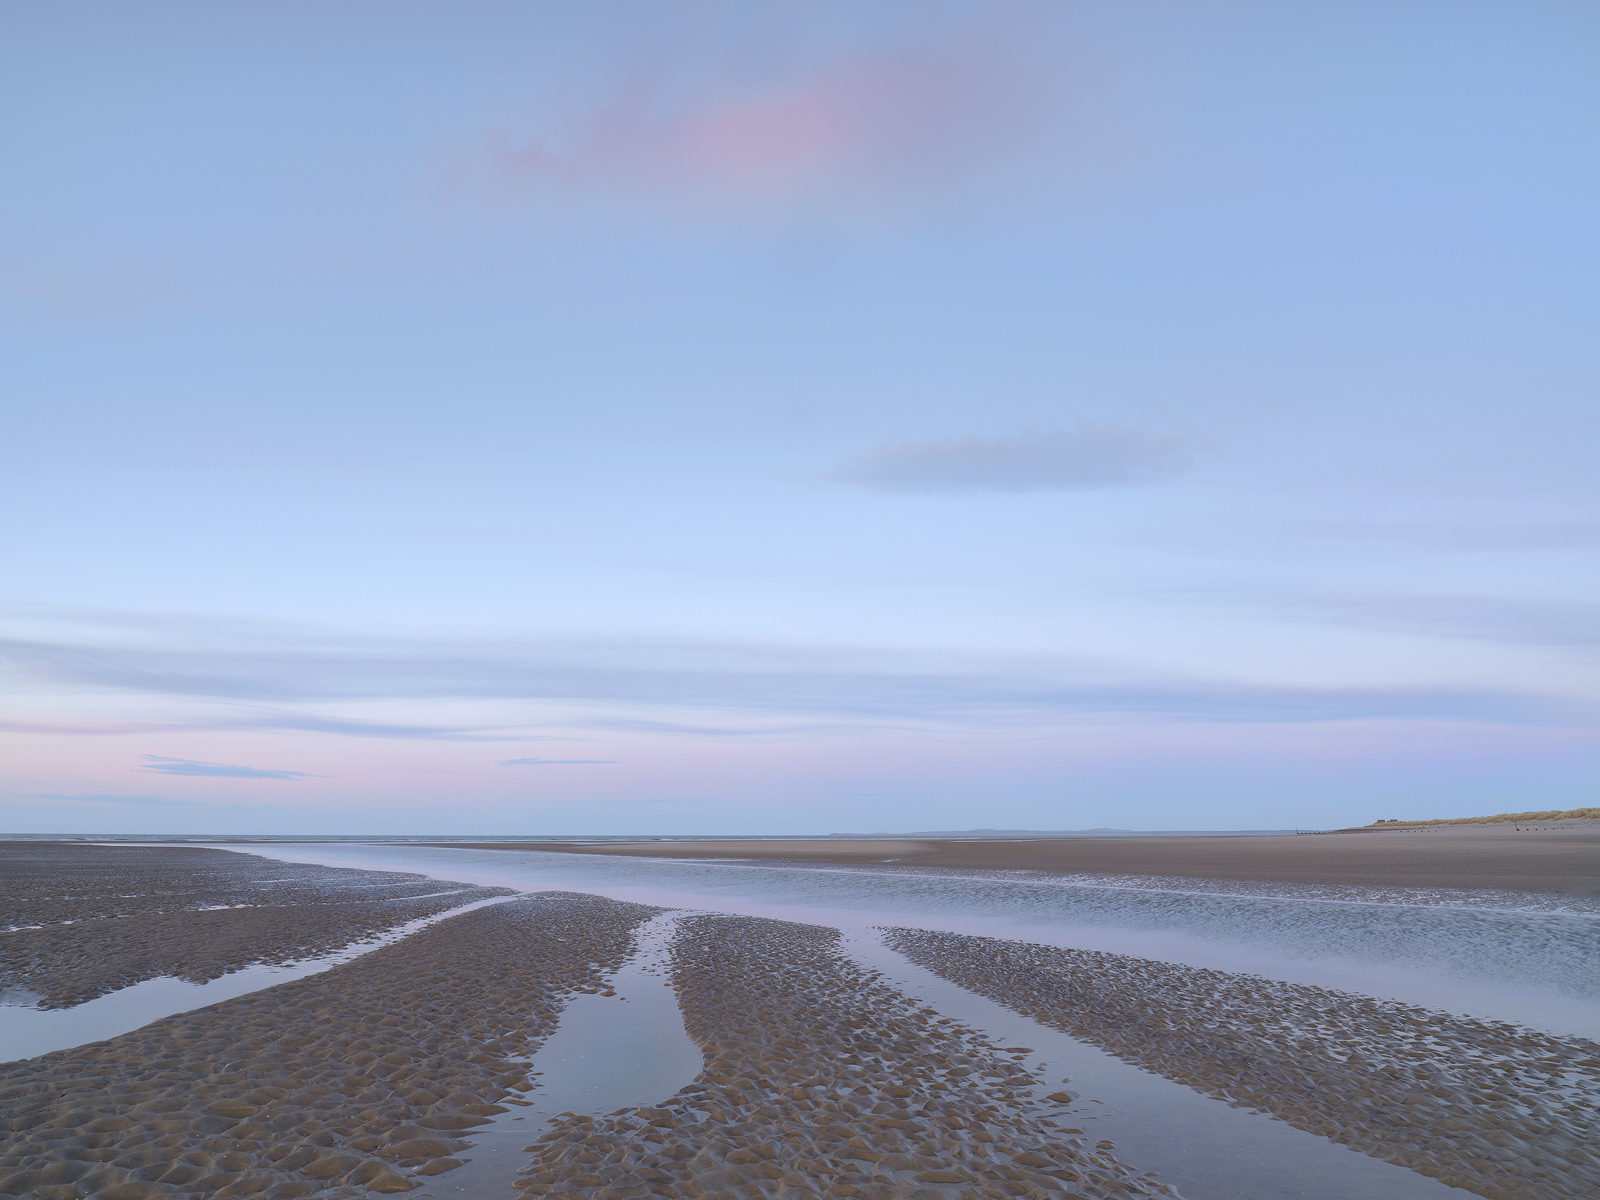 Twilight pastel pinks and blues displayed after sunset beside the outflow of the Findhorn river at Findhorn bay by the Moray Firth.